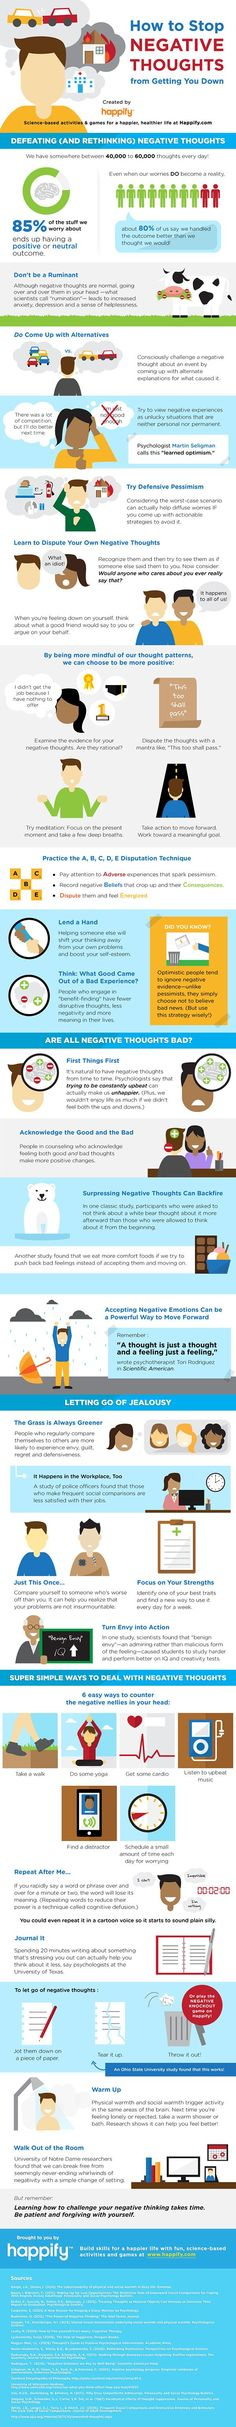 How to Stop Negative Thoughts from Getting You Down. #caregivers #optimism